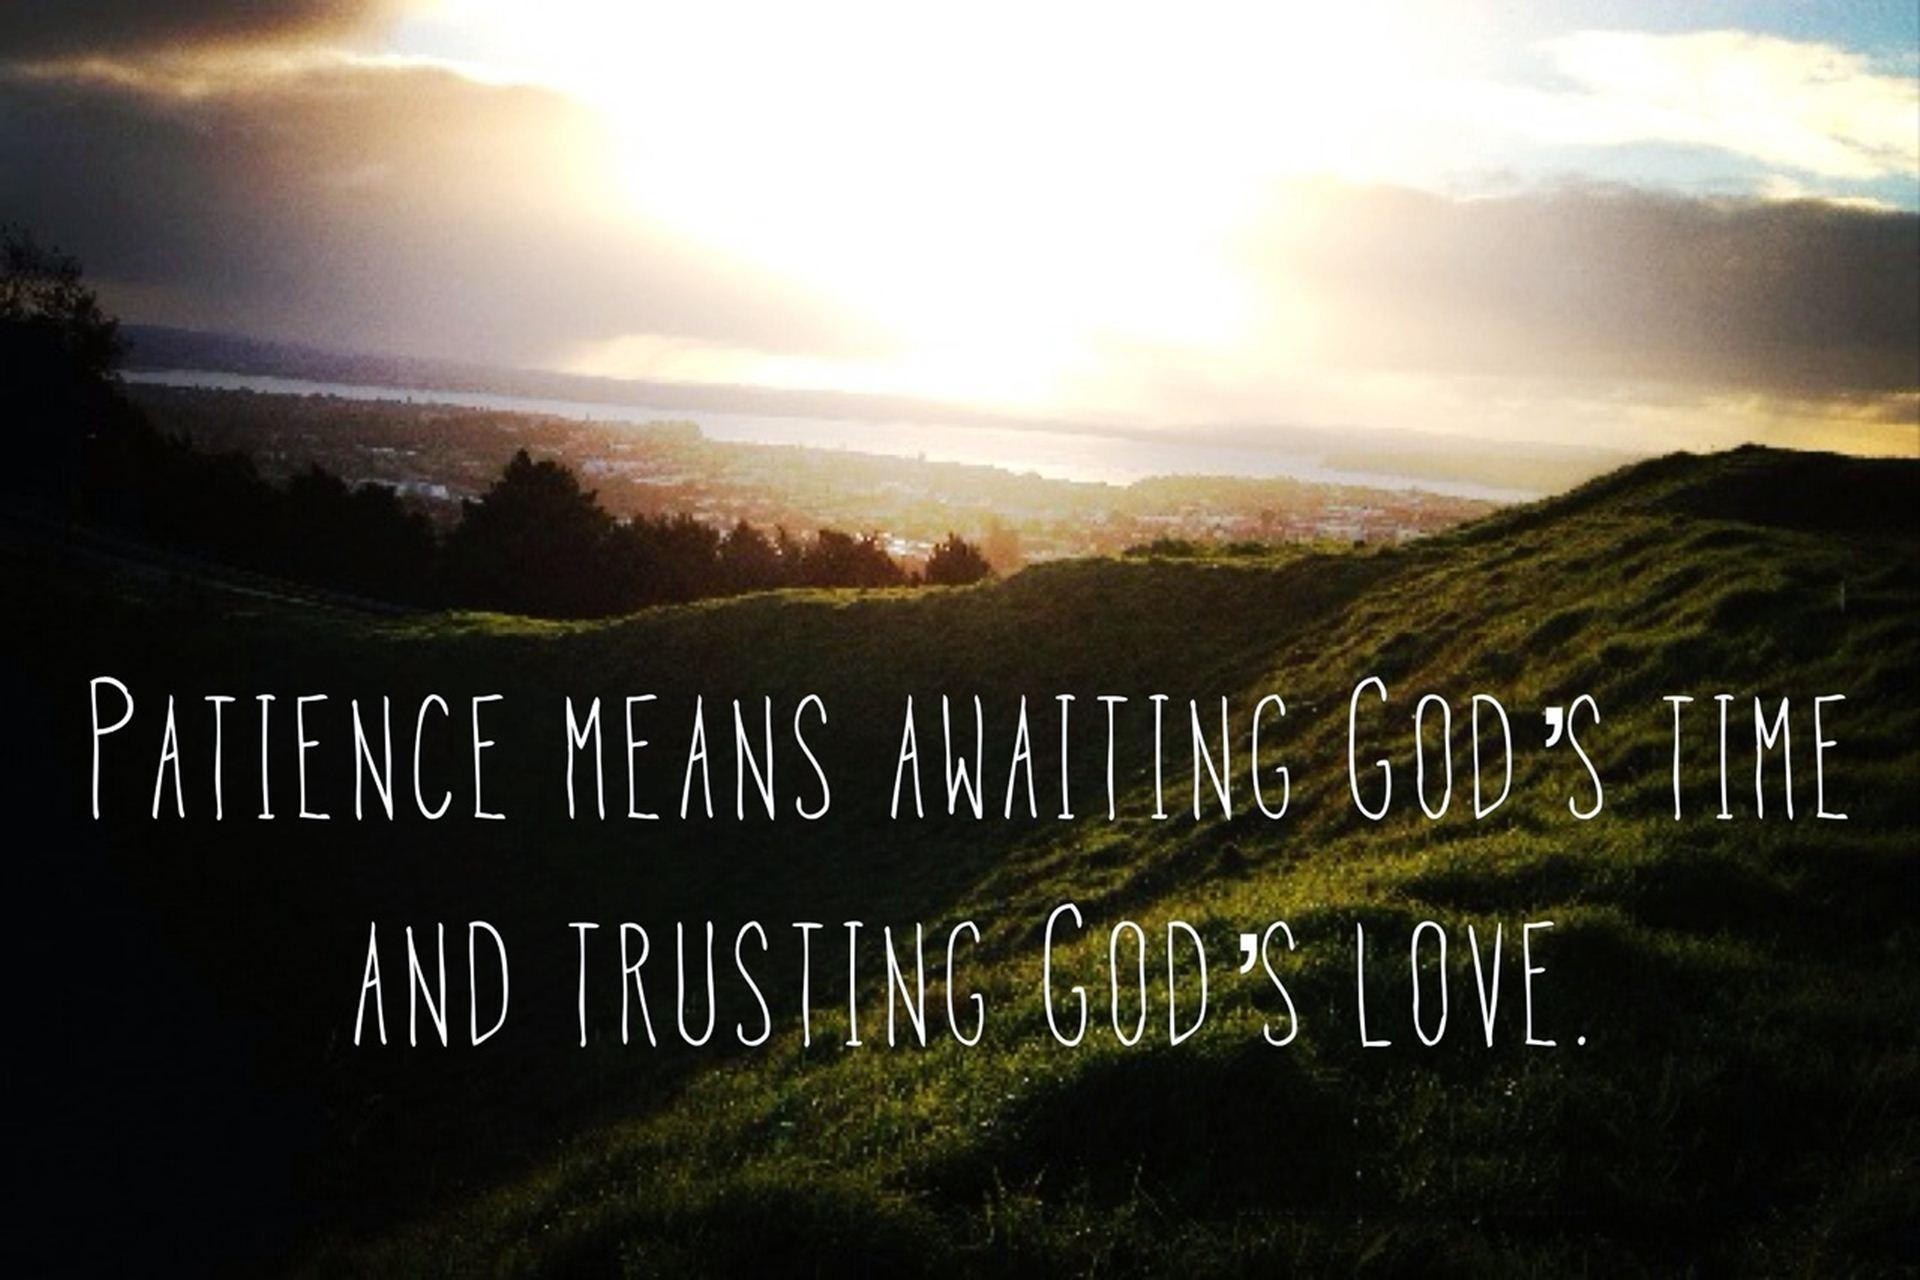 christian quotes wallpaper (64+ images)